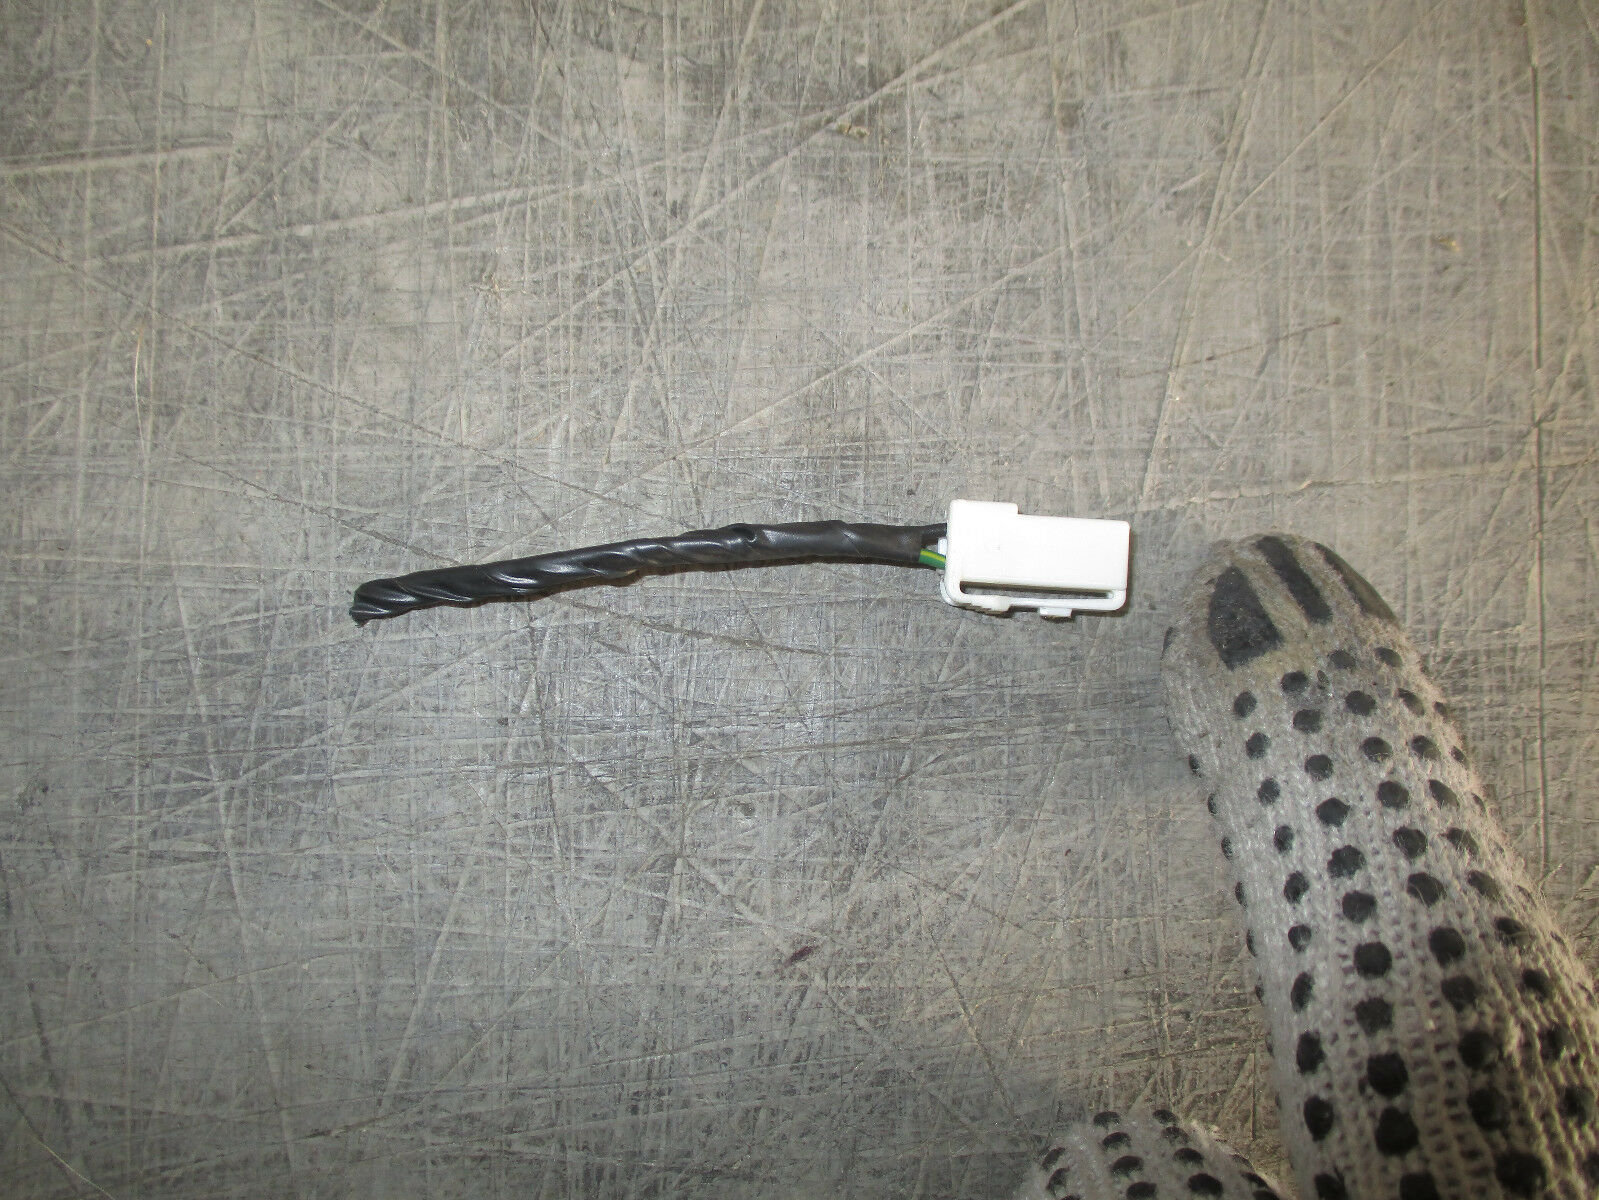 Used 1997 Nissan Pathfinder Seat Belts And Related Parts For Sale Wire Harness Driver Front Power Female Belt 1996 1998